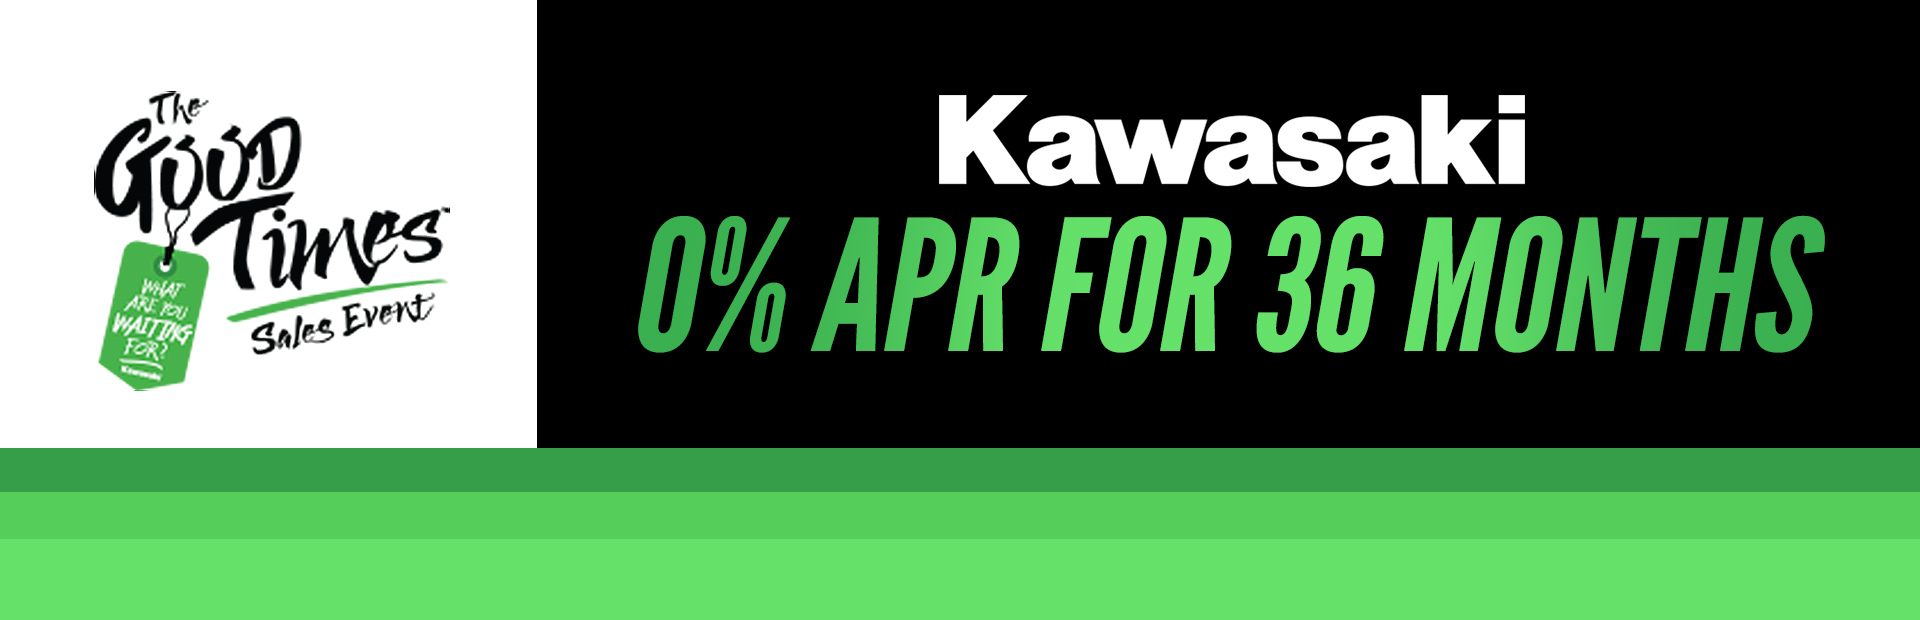 Kawasaki: The Good Times Sales Event 0% APR for 36 Months